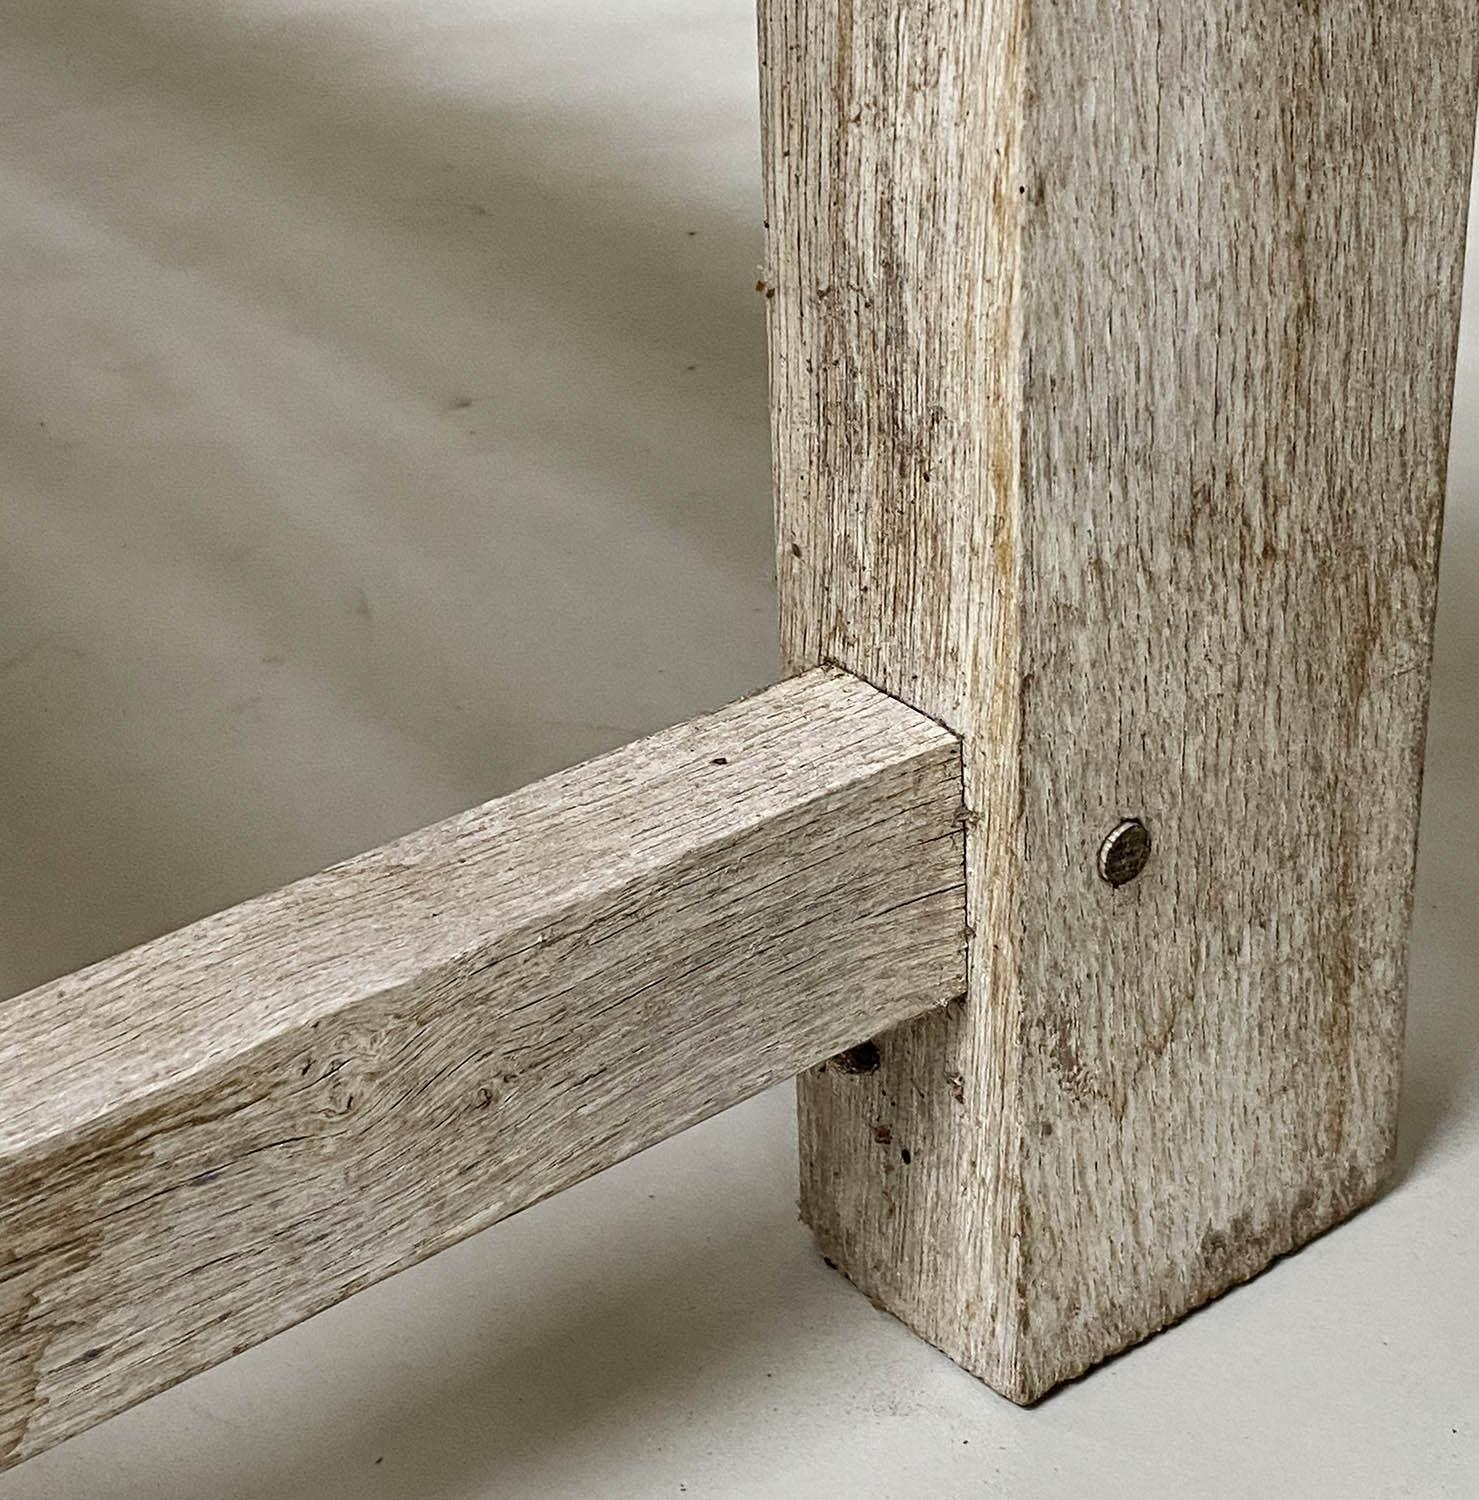 ENGLISH GARDEN BENCH, weathered English oak of substantial and slatted construction, 168cm W. - Image 2 of 8